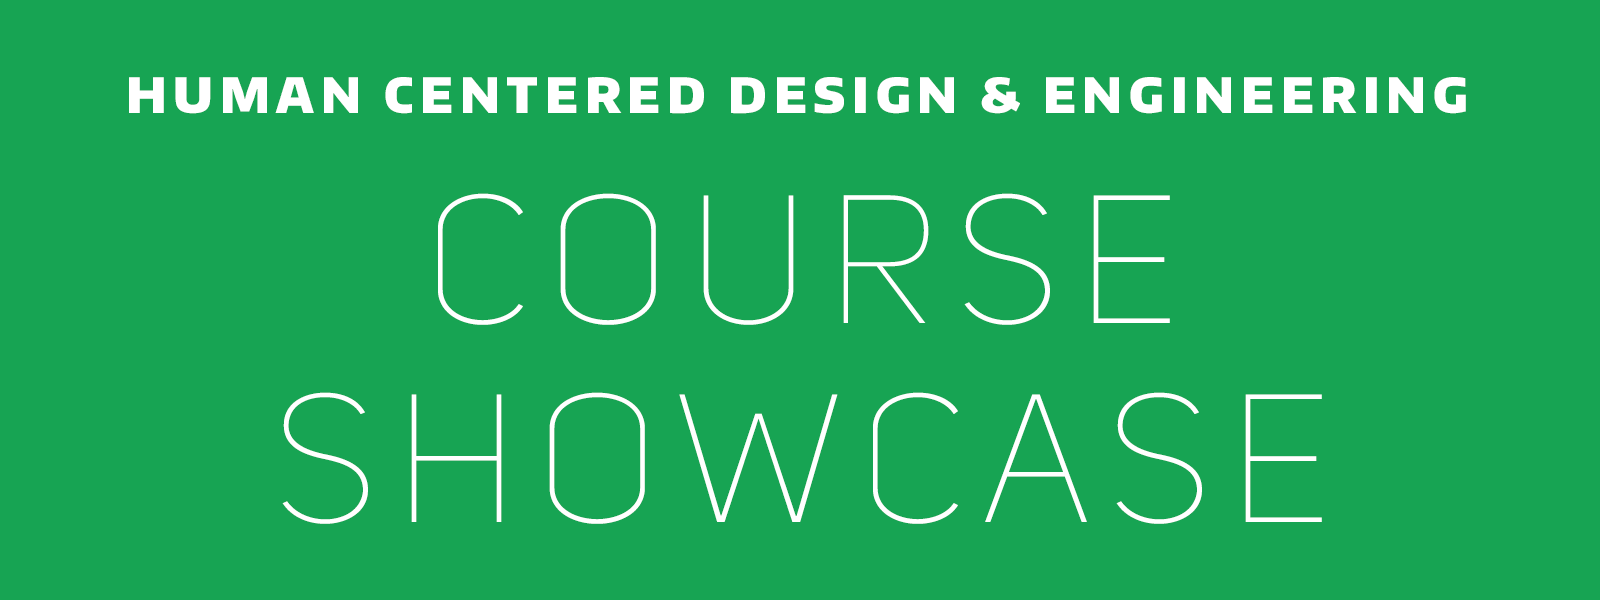 HCDE Course Showcase: Machine Learning with Image Models research group